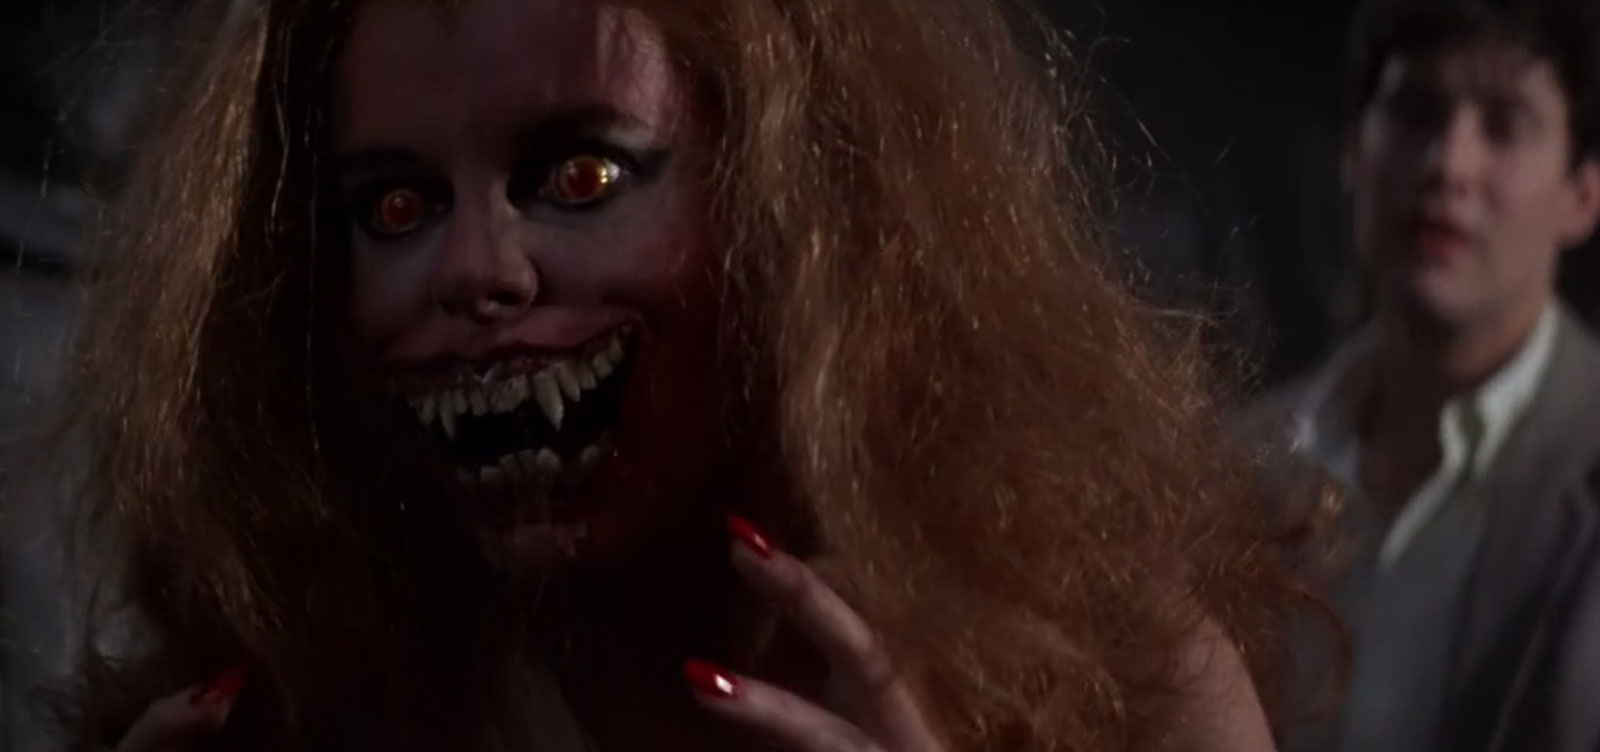 Fright_Night_85_Review_Images_V08